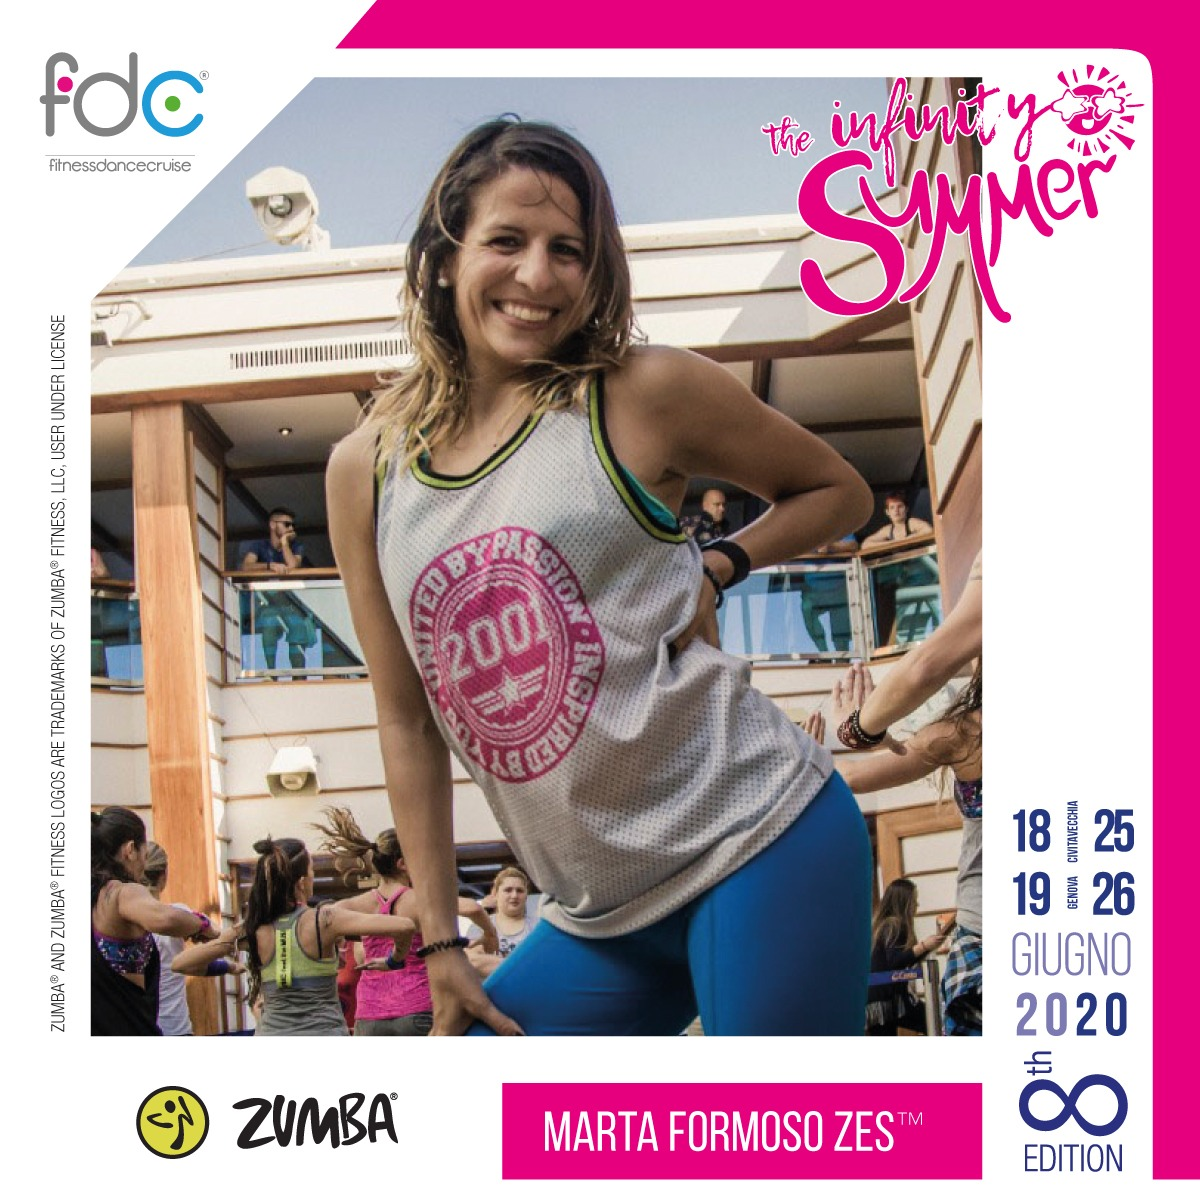 Zumba FDC Presenter Marta Formoso